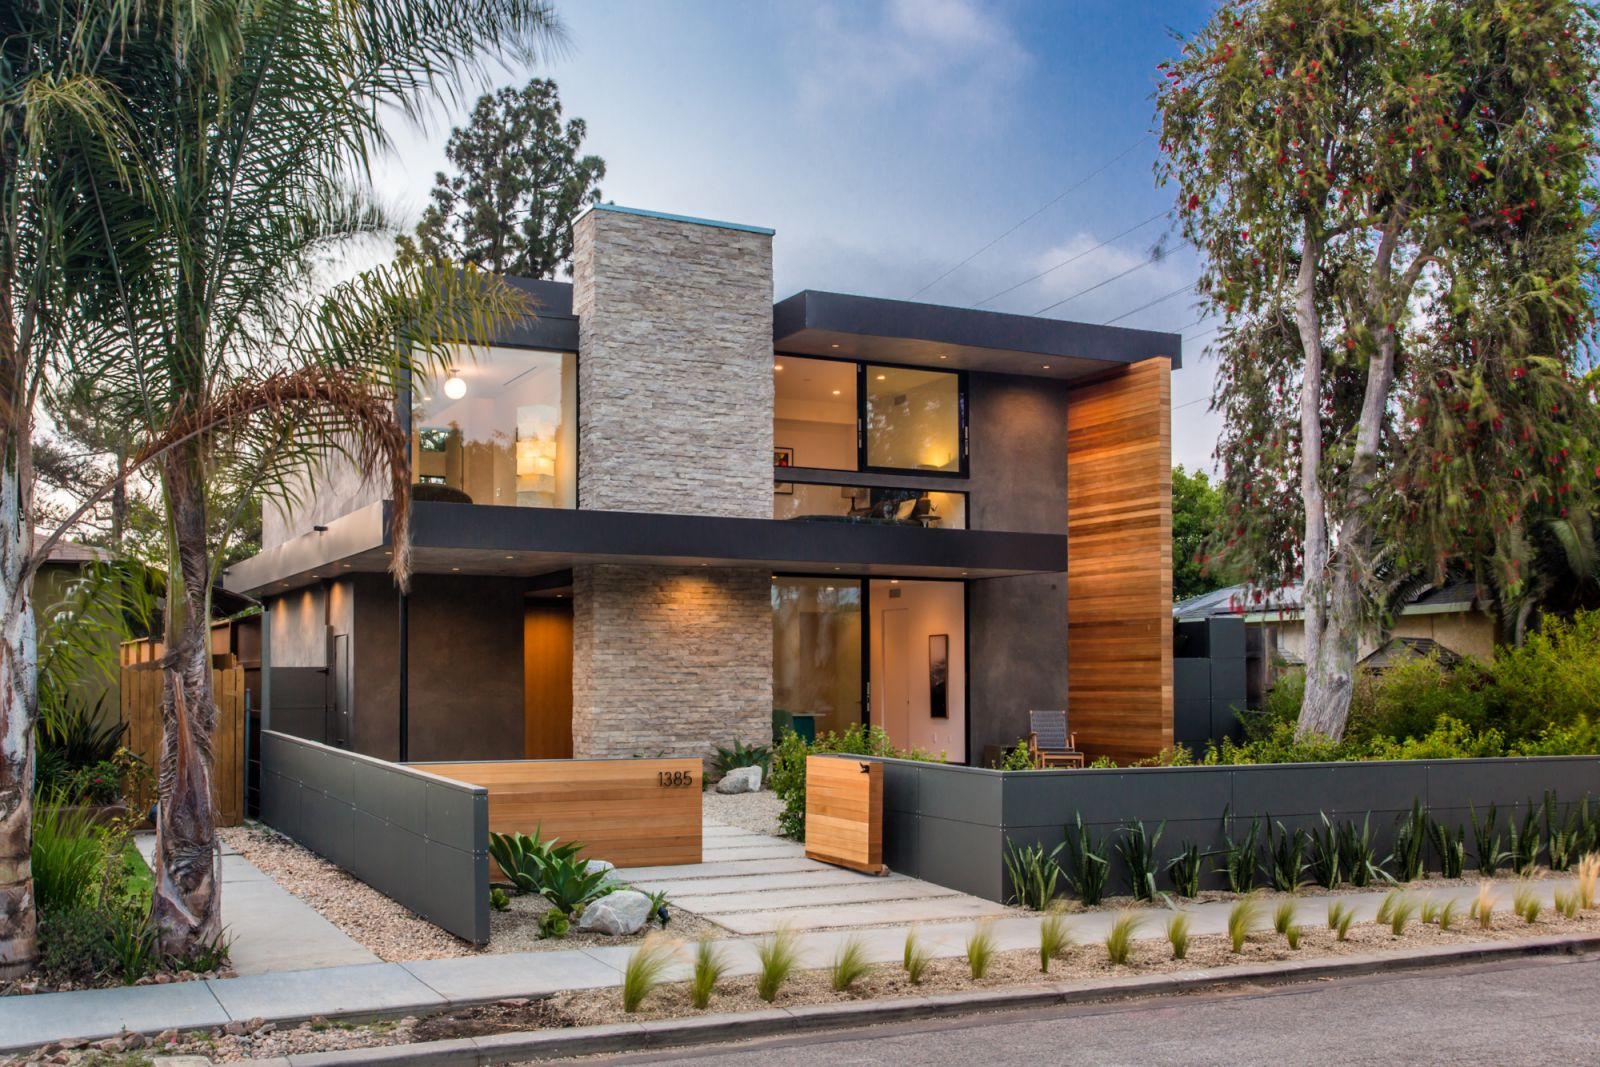 Modern Home Palms Boulevard in Venice, California by Electric Bowery